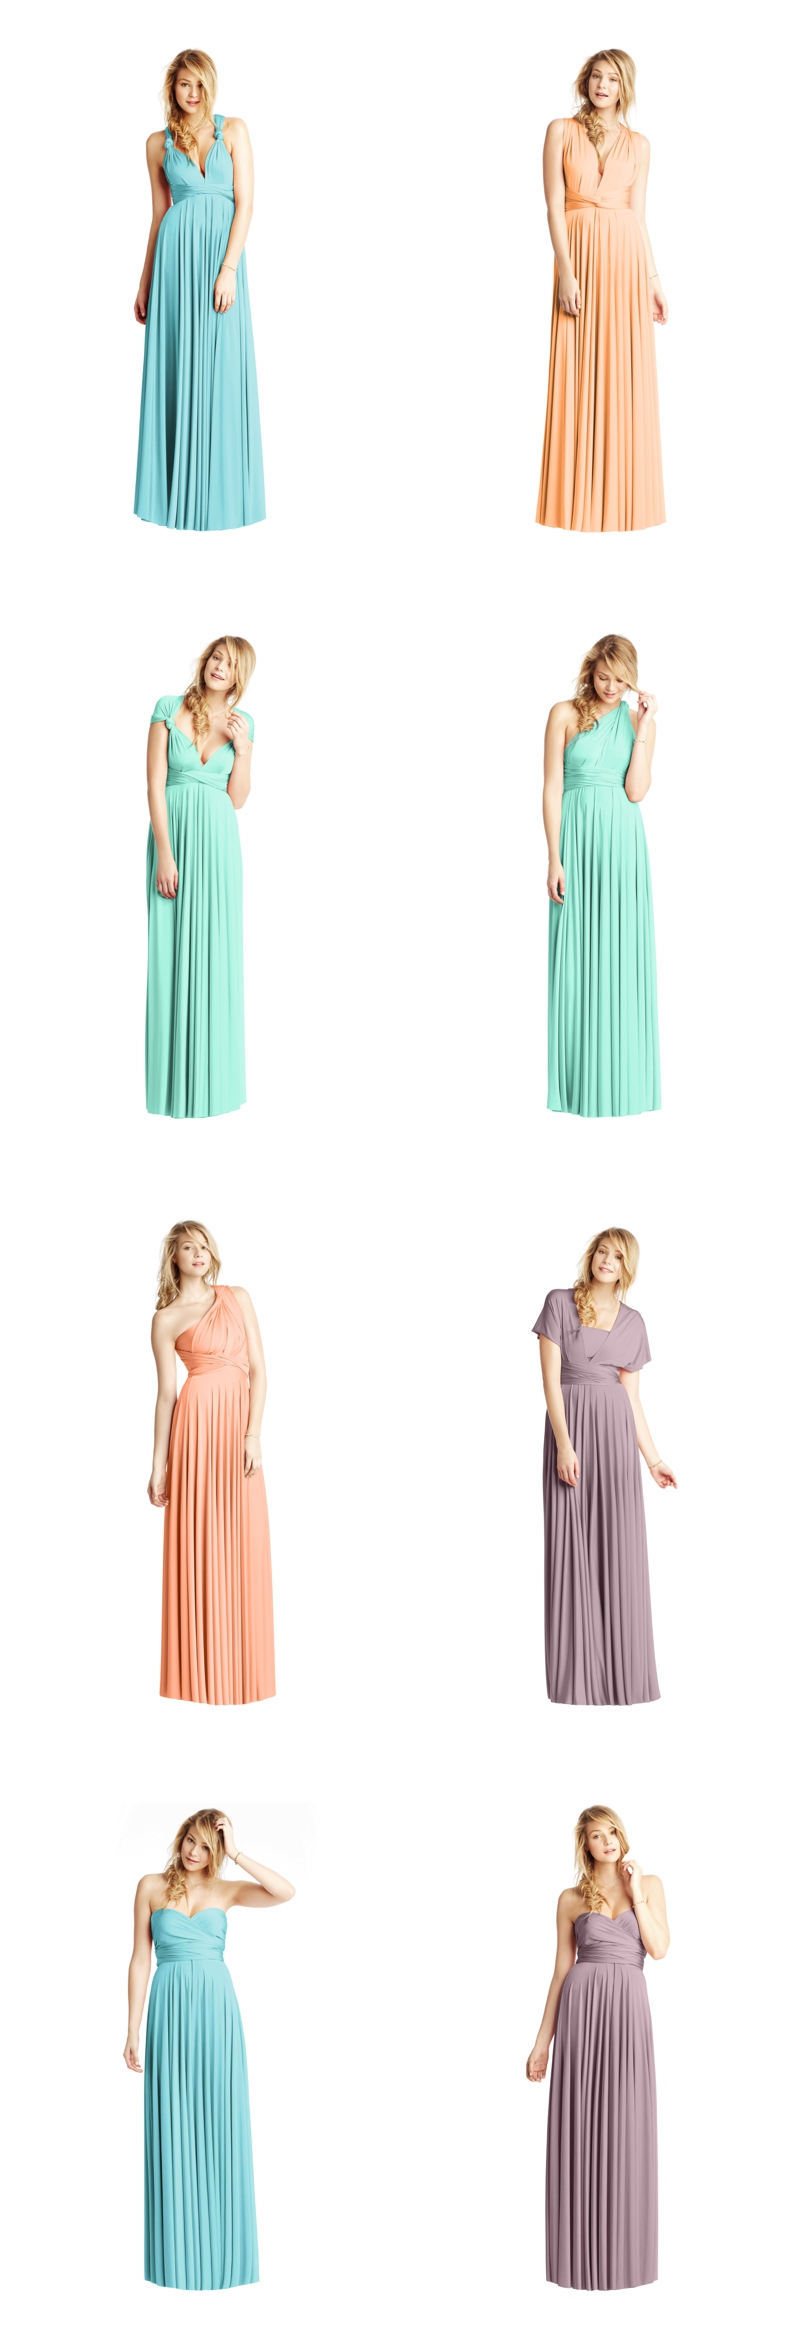 Mint green two birds bridesmaids dresses archives rock my atwobirds bridesmaids dresses new pastel shades peach mint heather and duck egg0536 ombrellifo Image collections